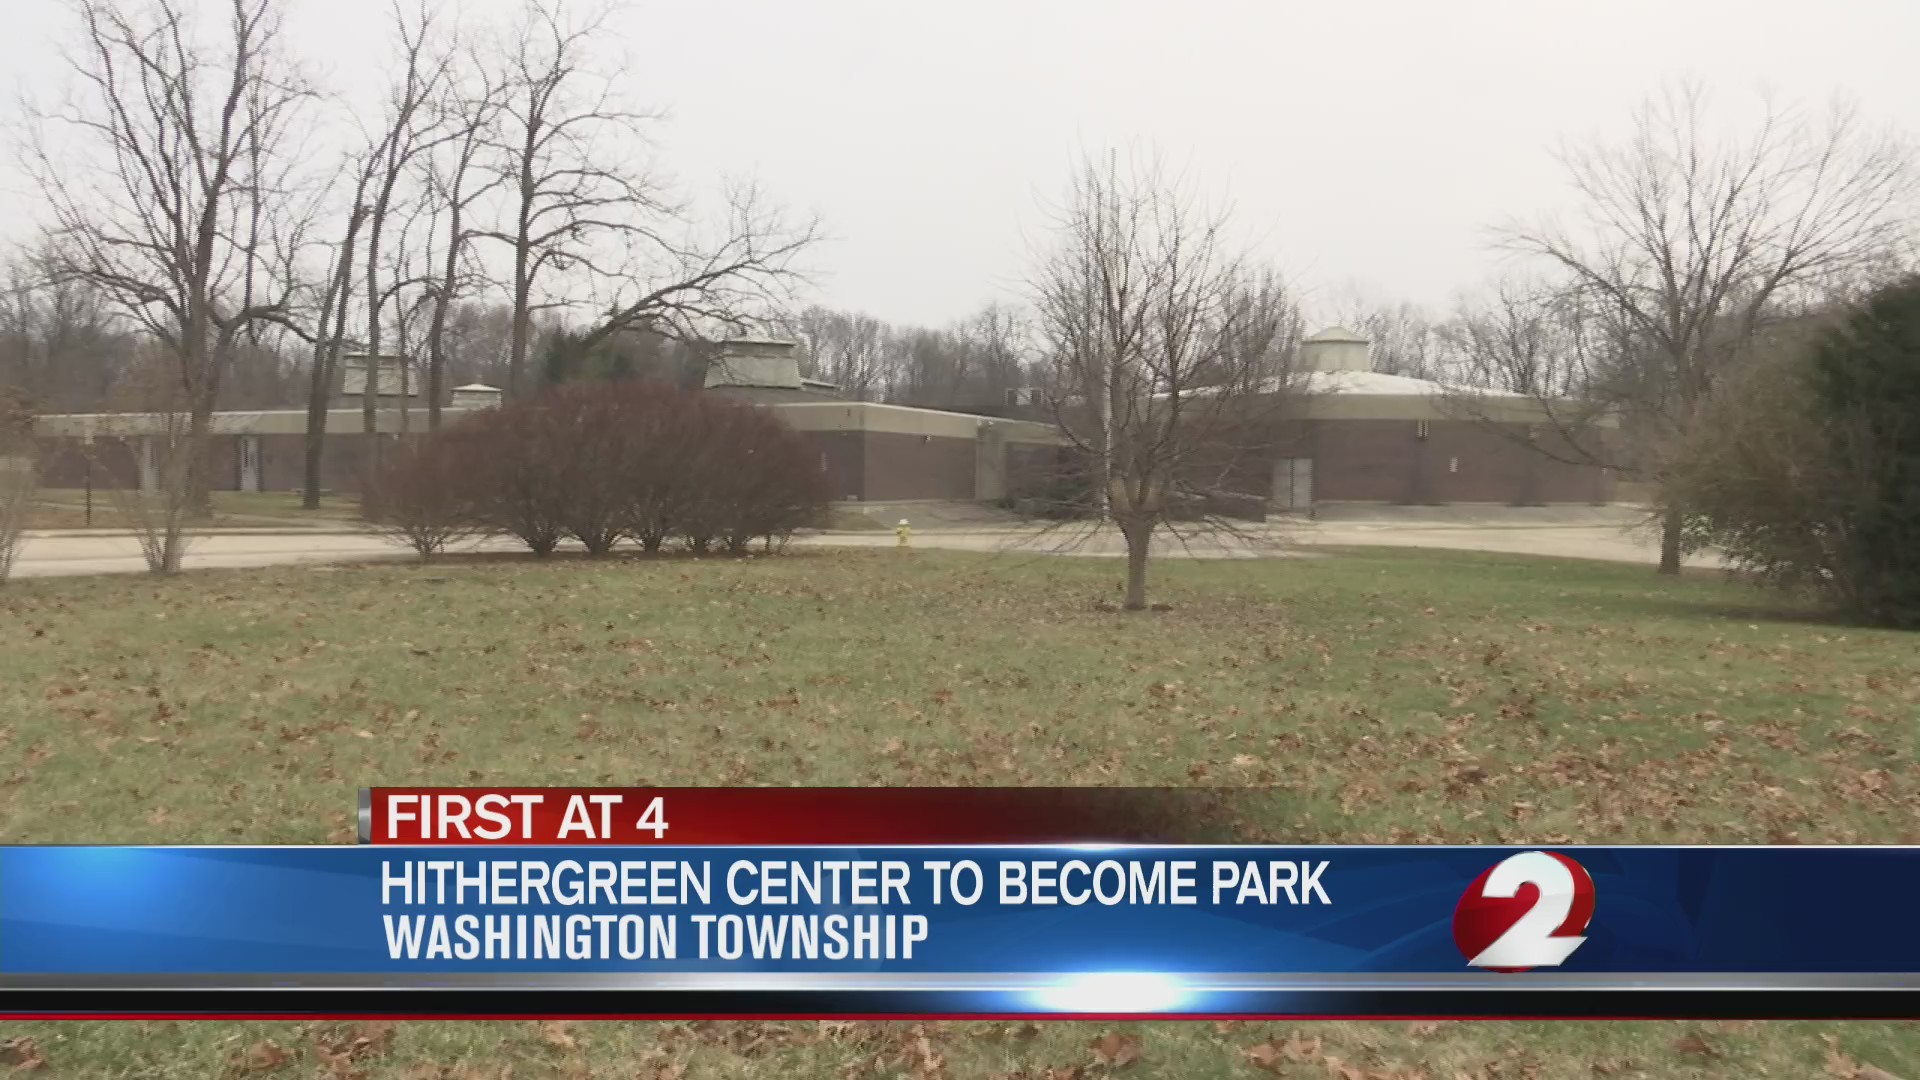 Hithergreen Center to become park